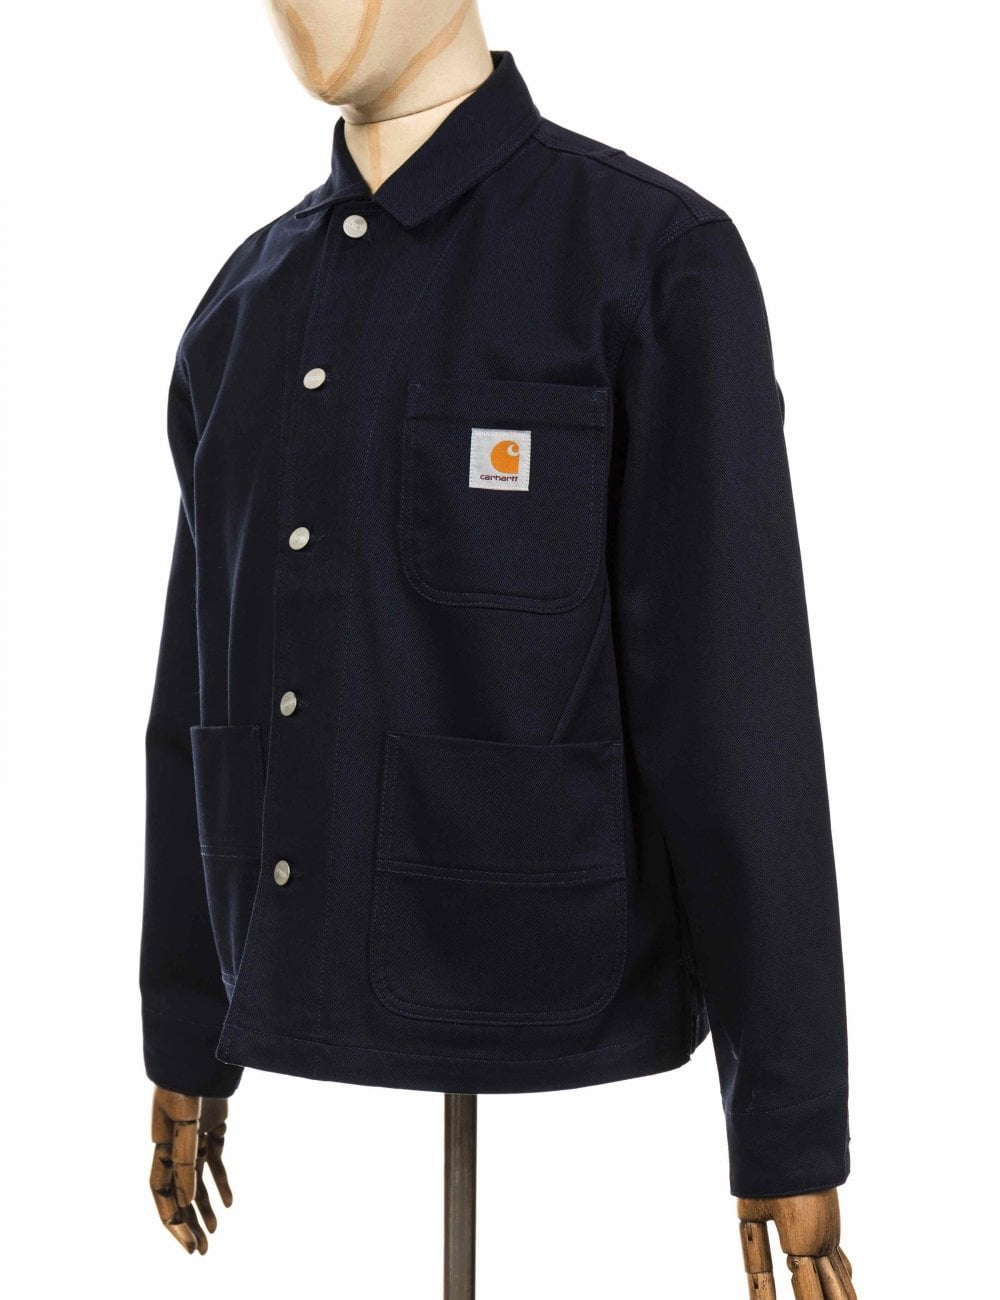 sneakers new high popular brand Chalk Jacket - Dark Navy